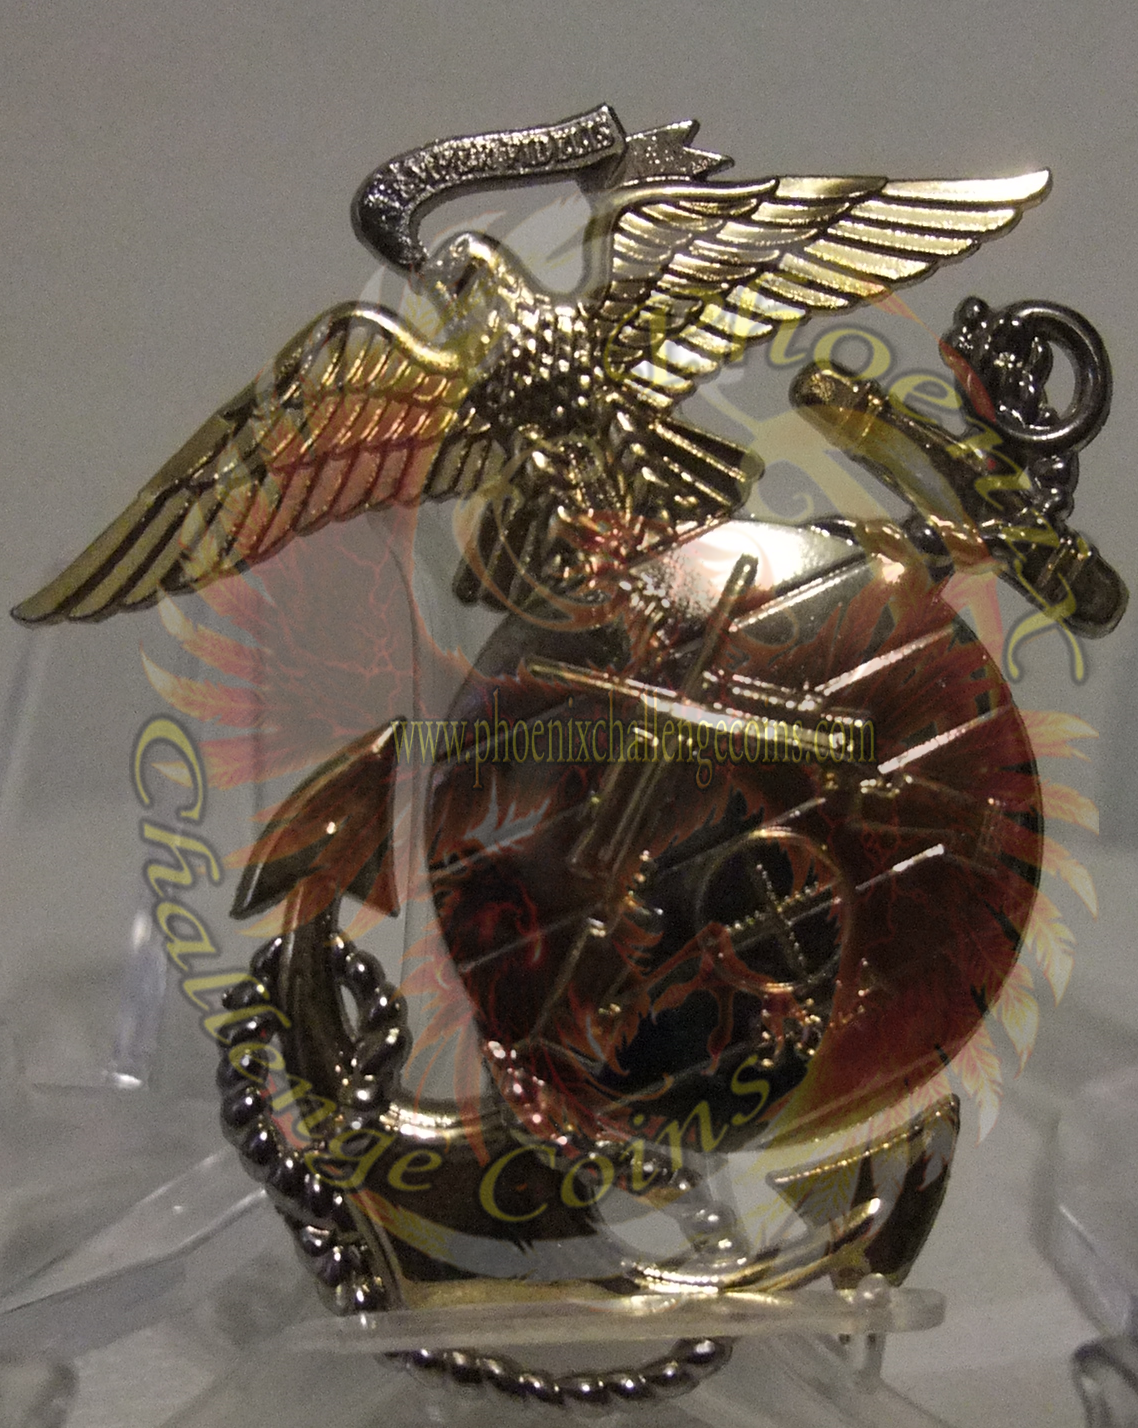 USMC Scout Sniper instructor retirement coin by Phoenix